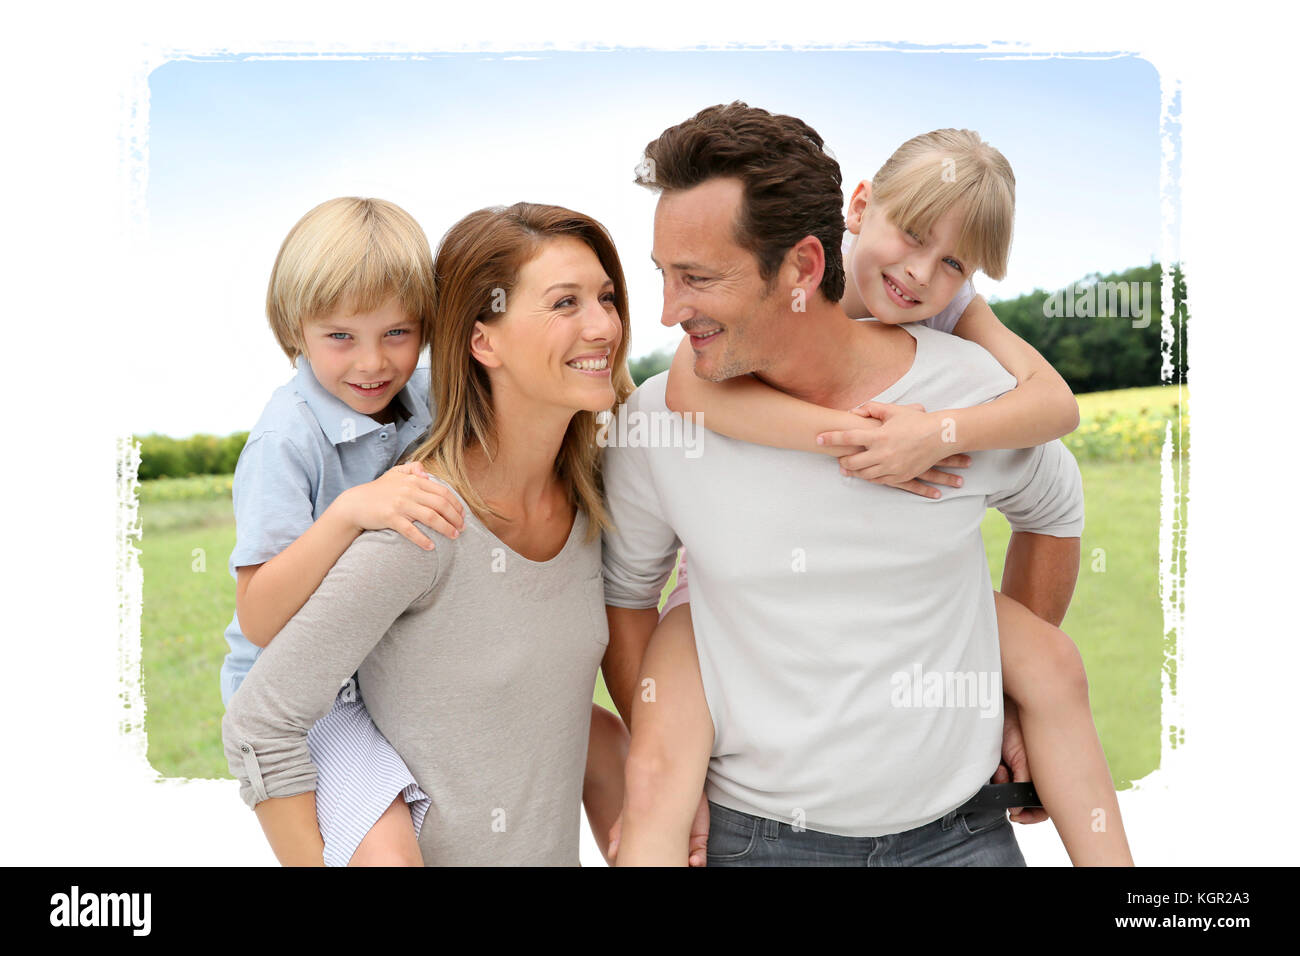 Les parents qui piggyback ride to kids in countryside Photo Stock